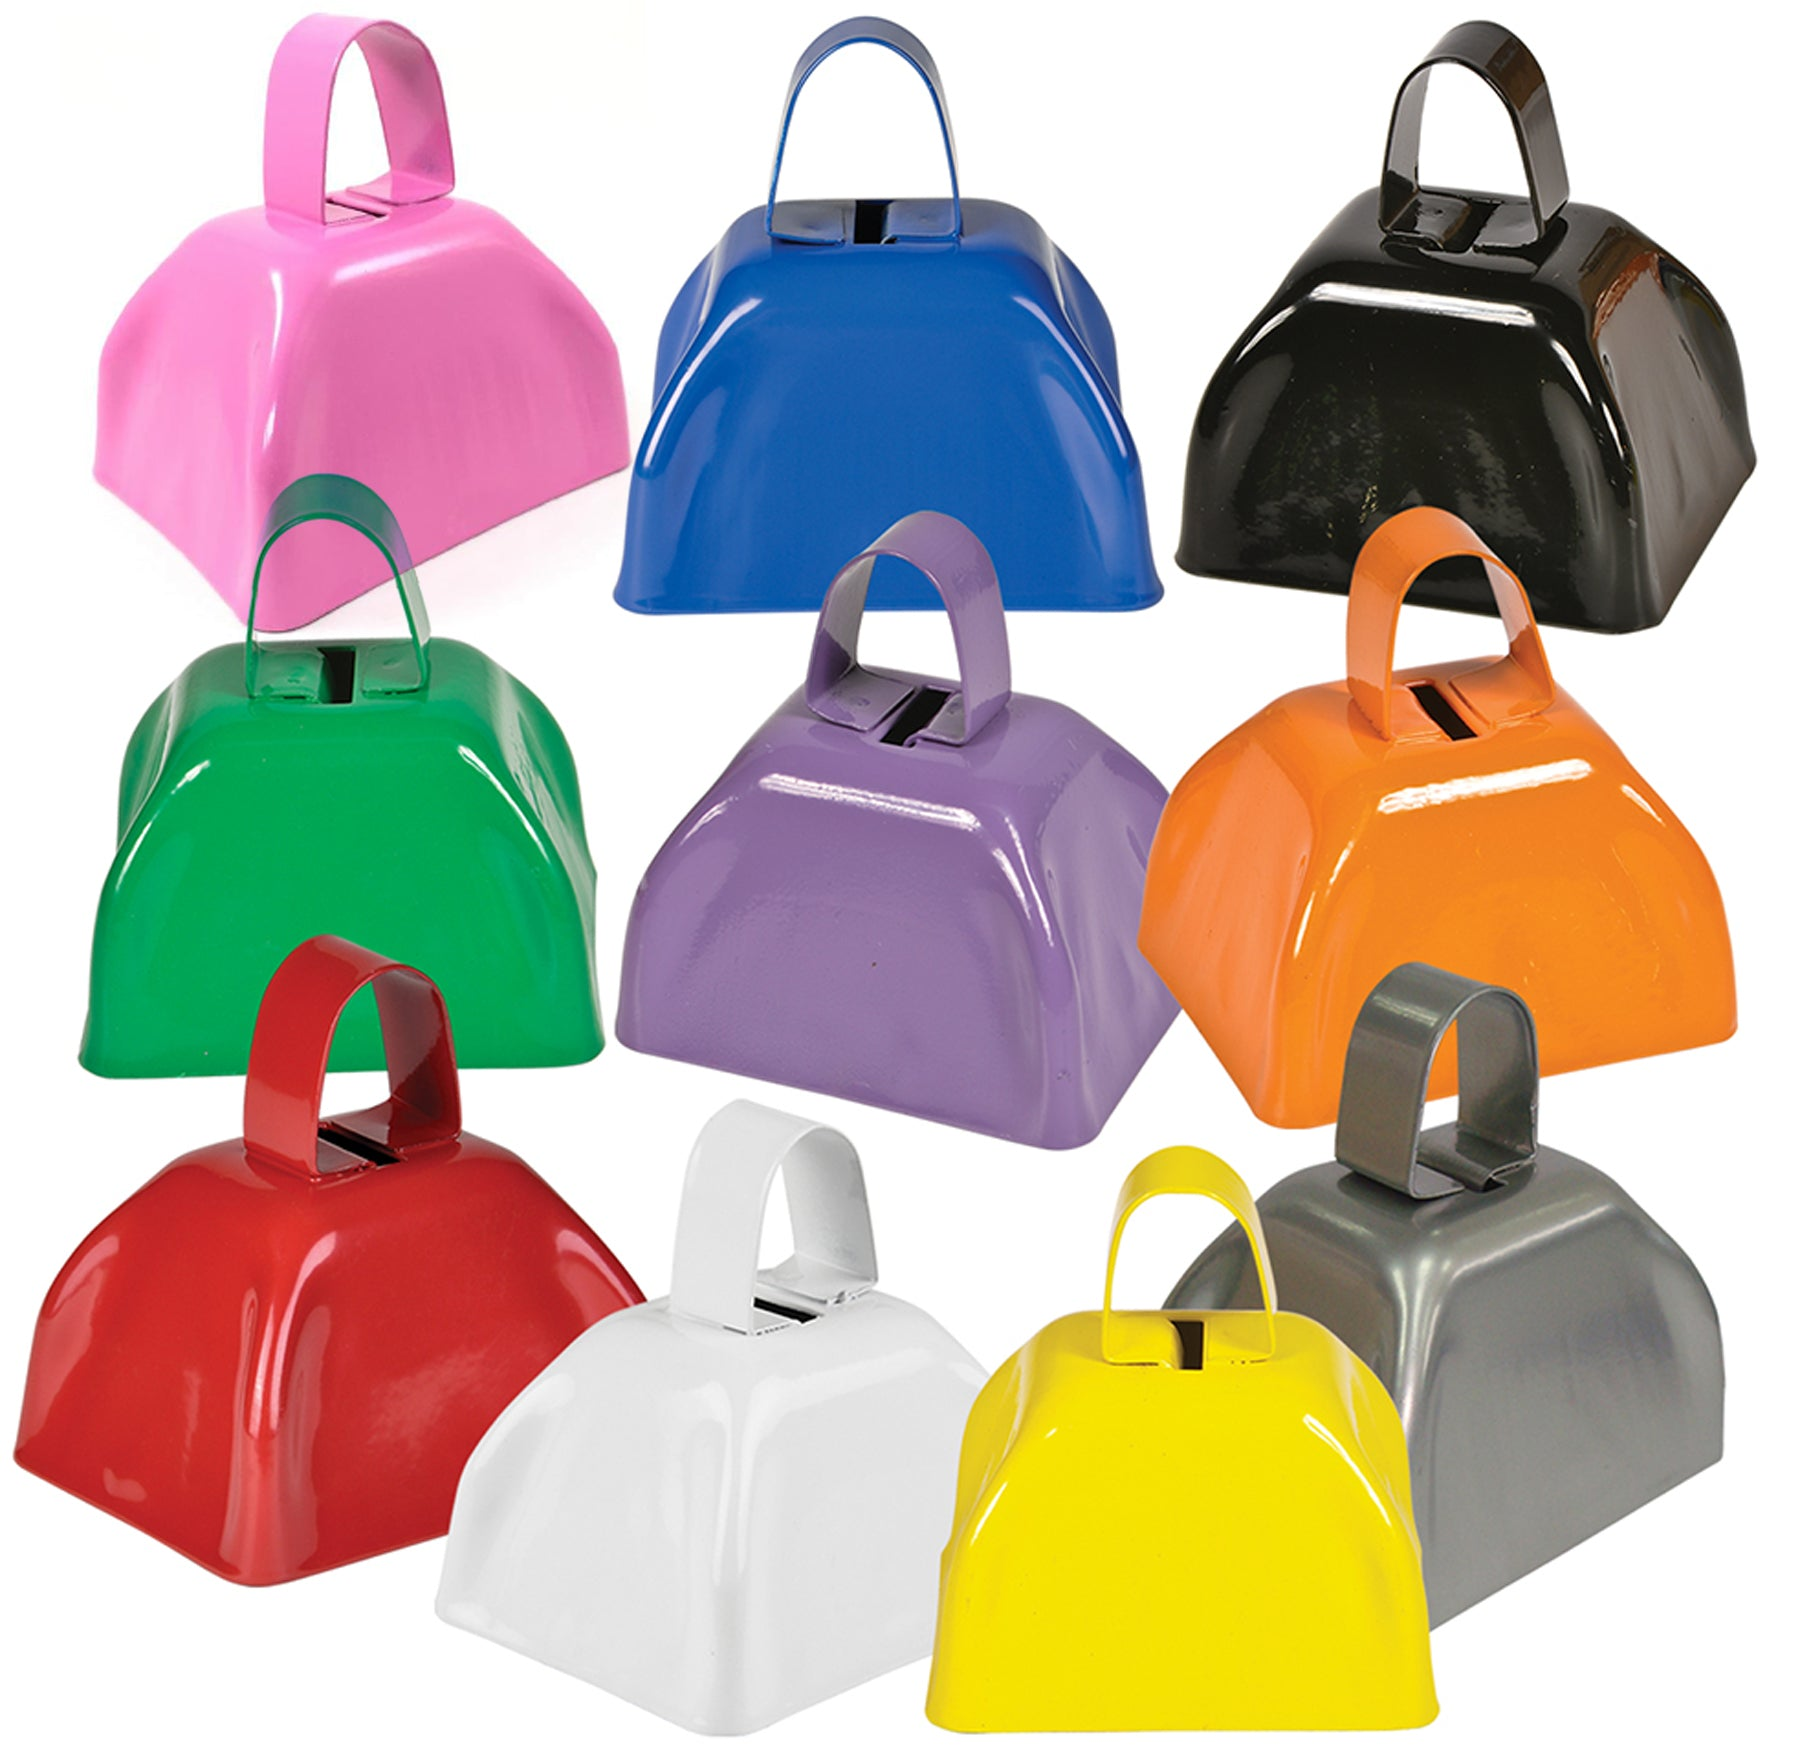 Small Cowbells Cowbell With Handle Cowbells For Sale Cowbells